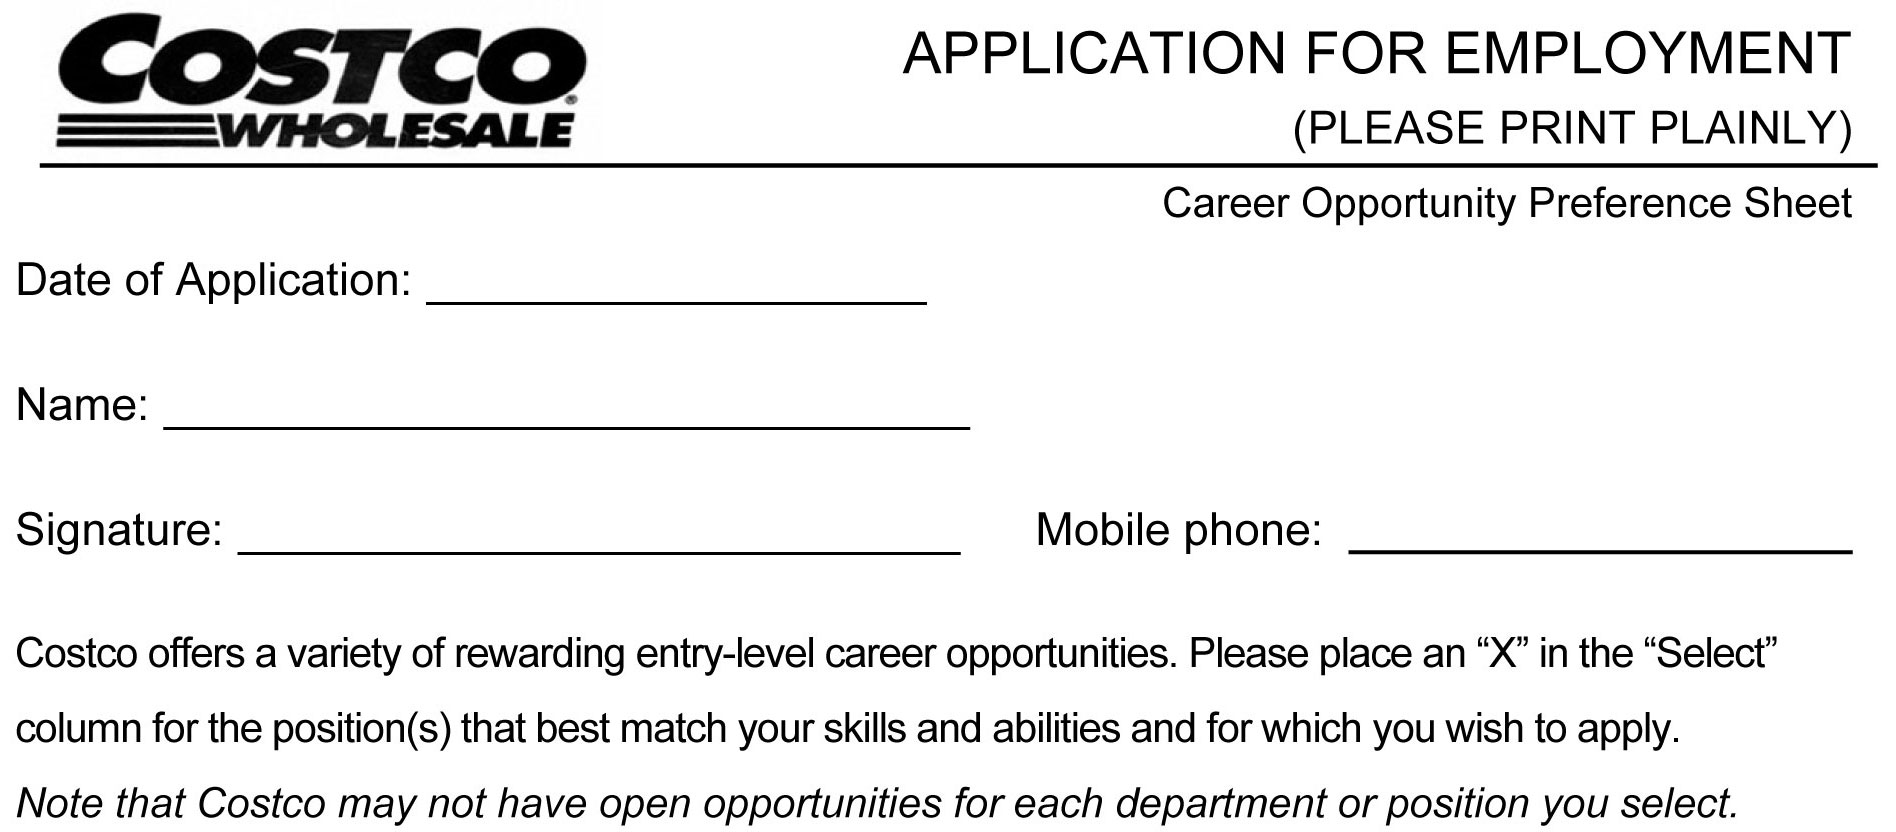 Good Download Costco Job Application Intended Costco Jobs